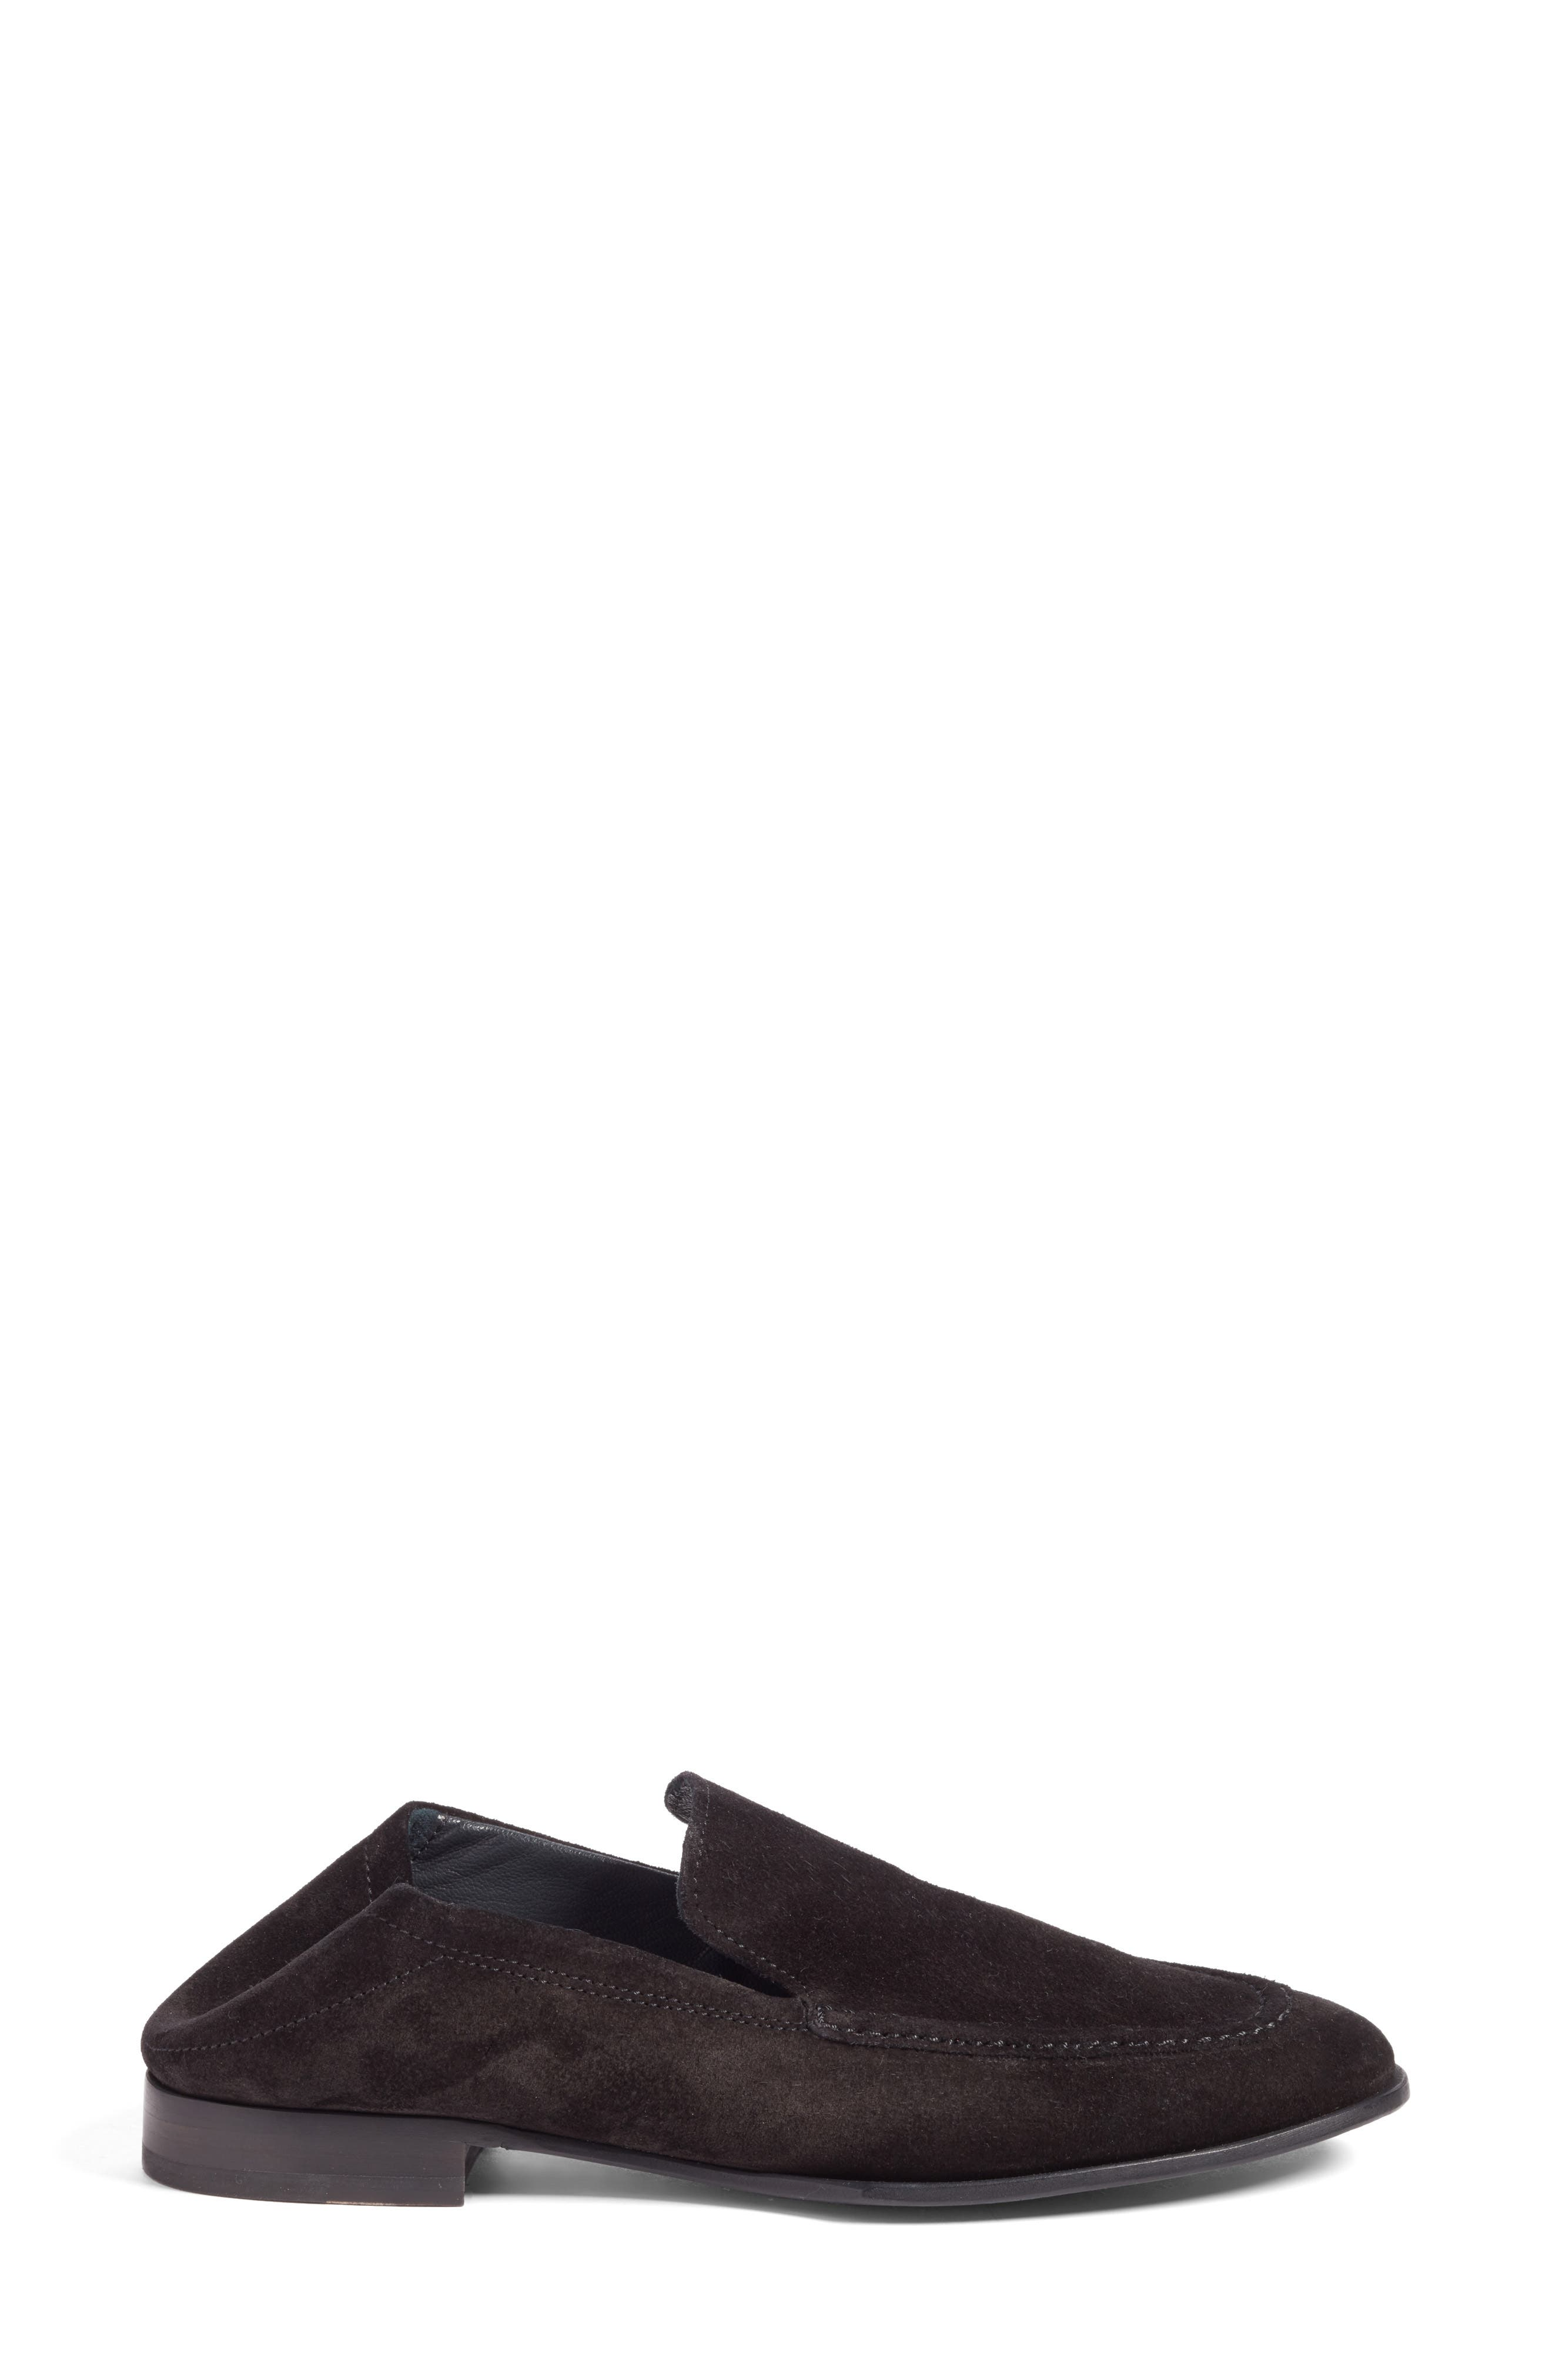 Alix Convertible Loafer,                             Alternate thumbnail 4, color,                             008